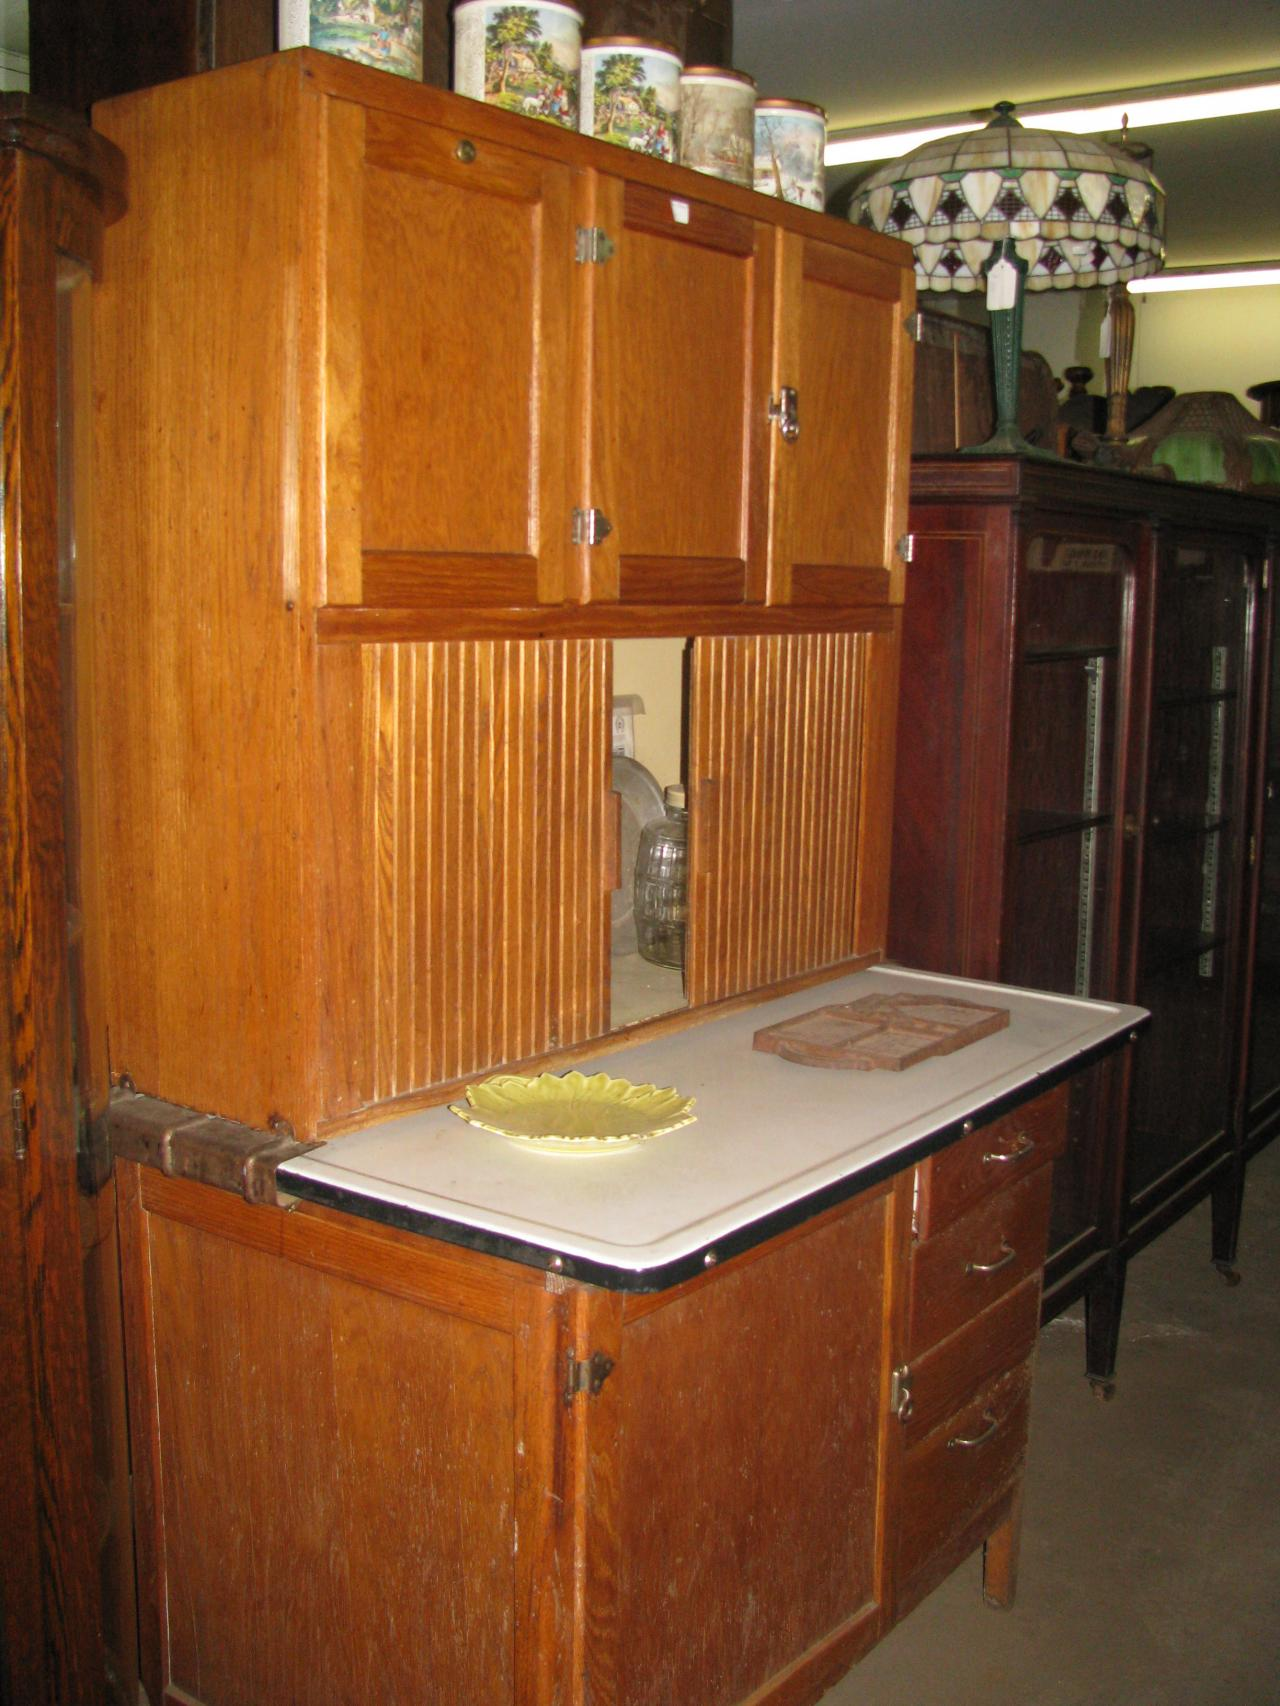 100+ [ Sellers Hoosier Cabinet Pictures ] | Lately Vintage 1920 ...